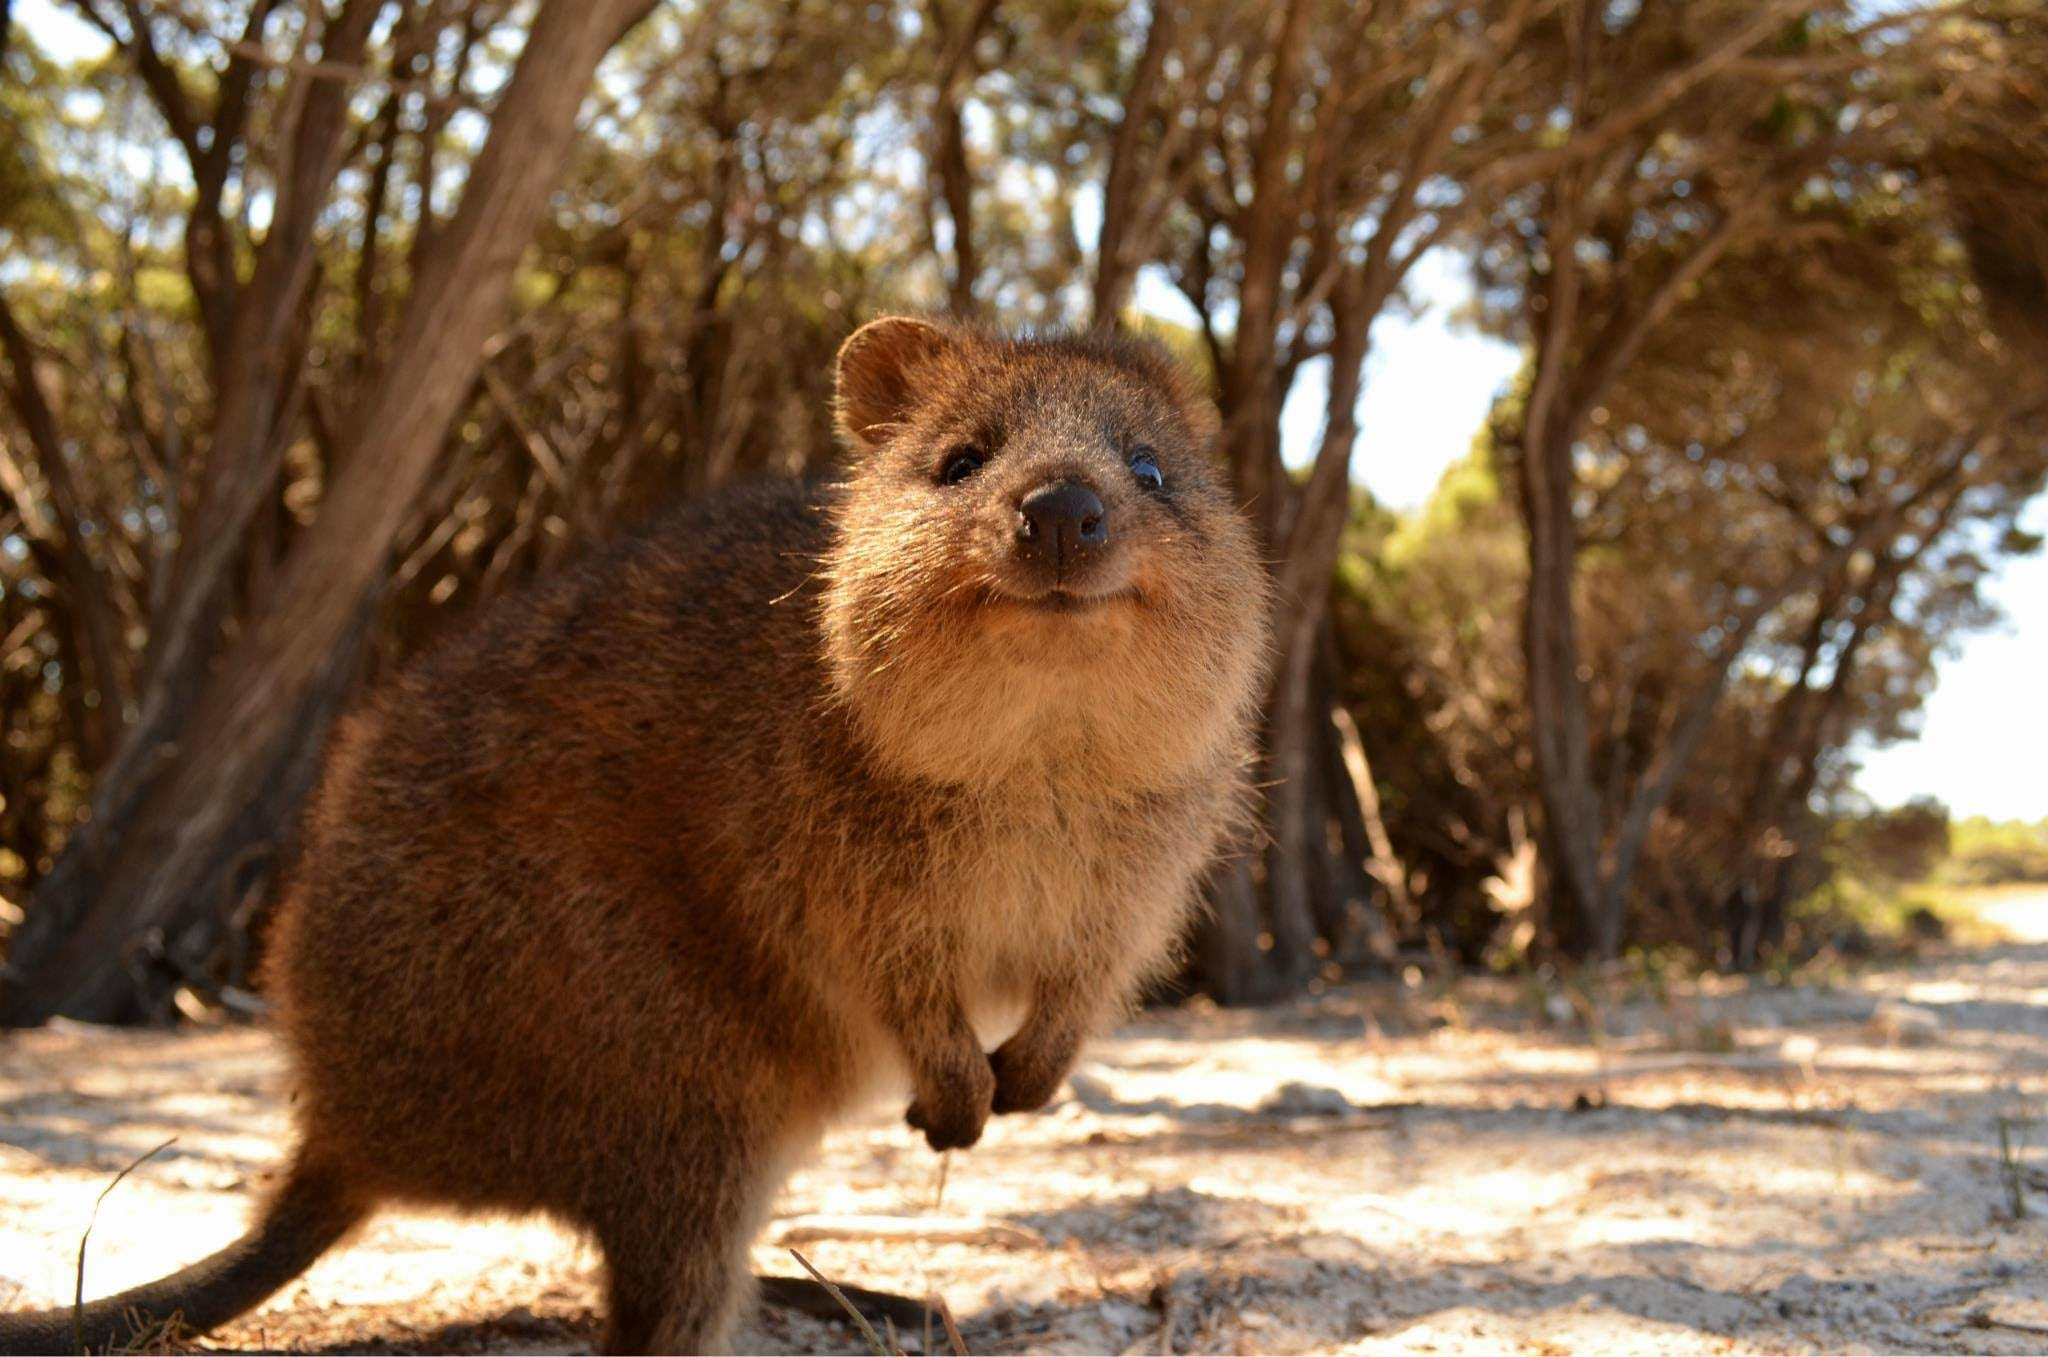 Quokka widescreen wallpapers